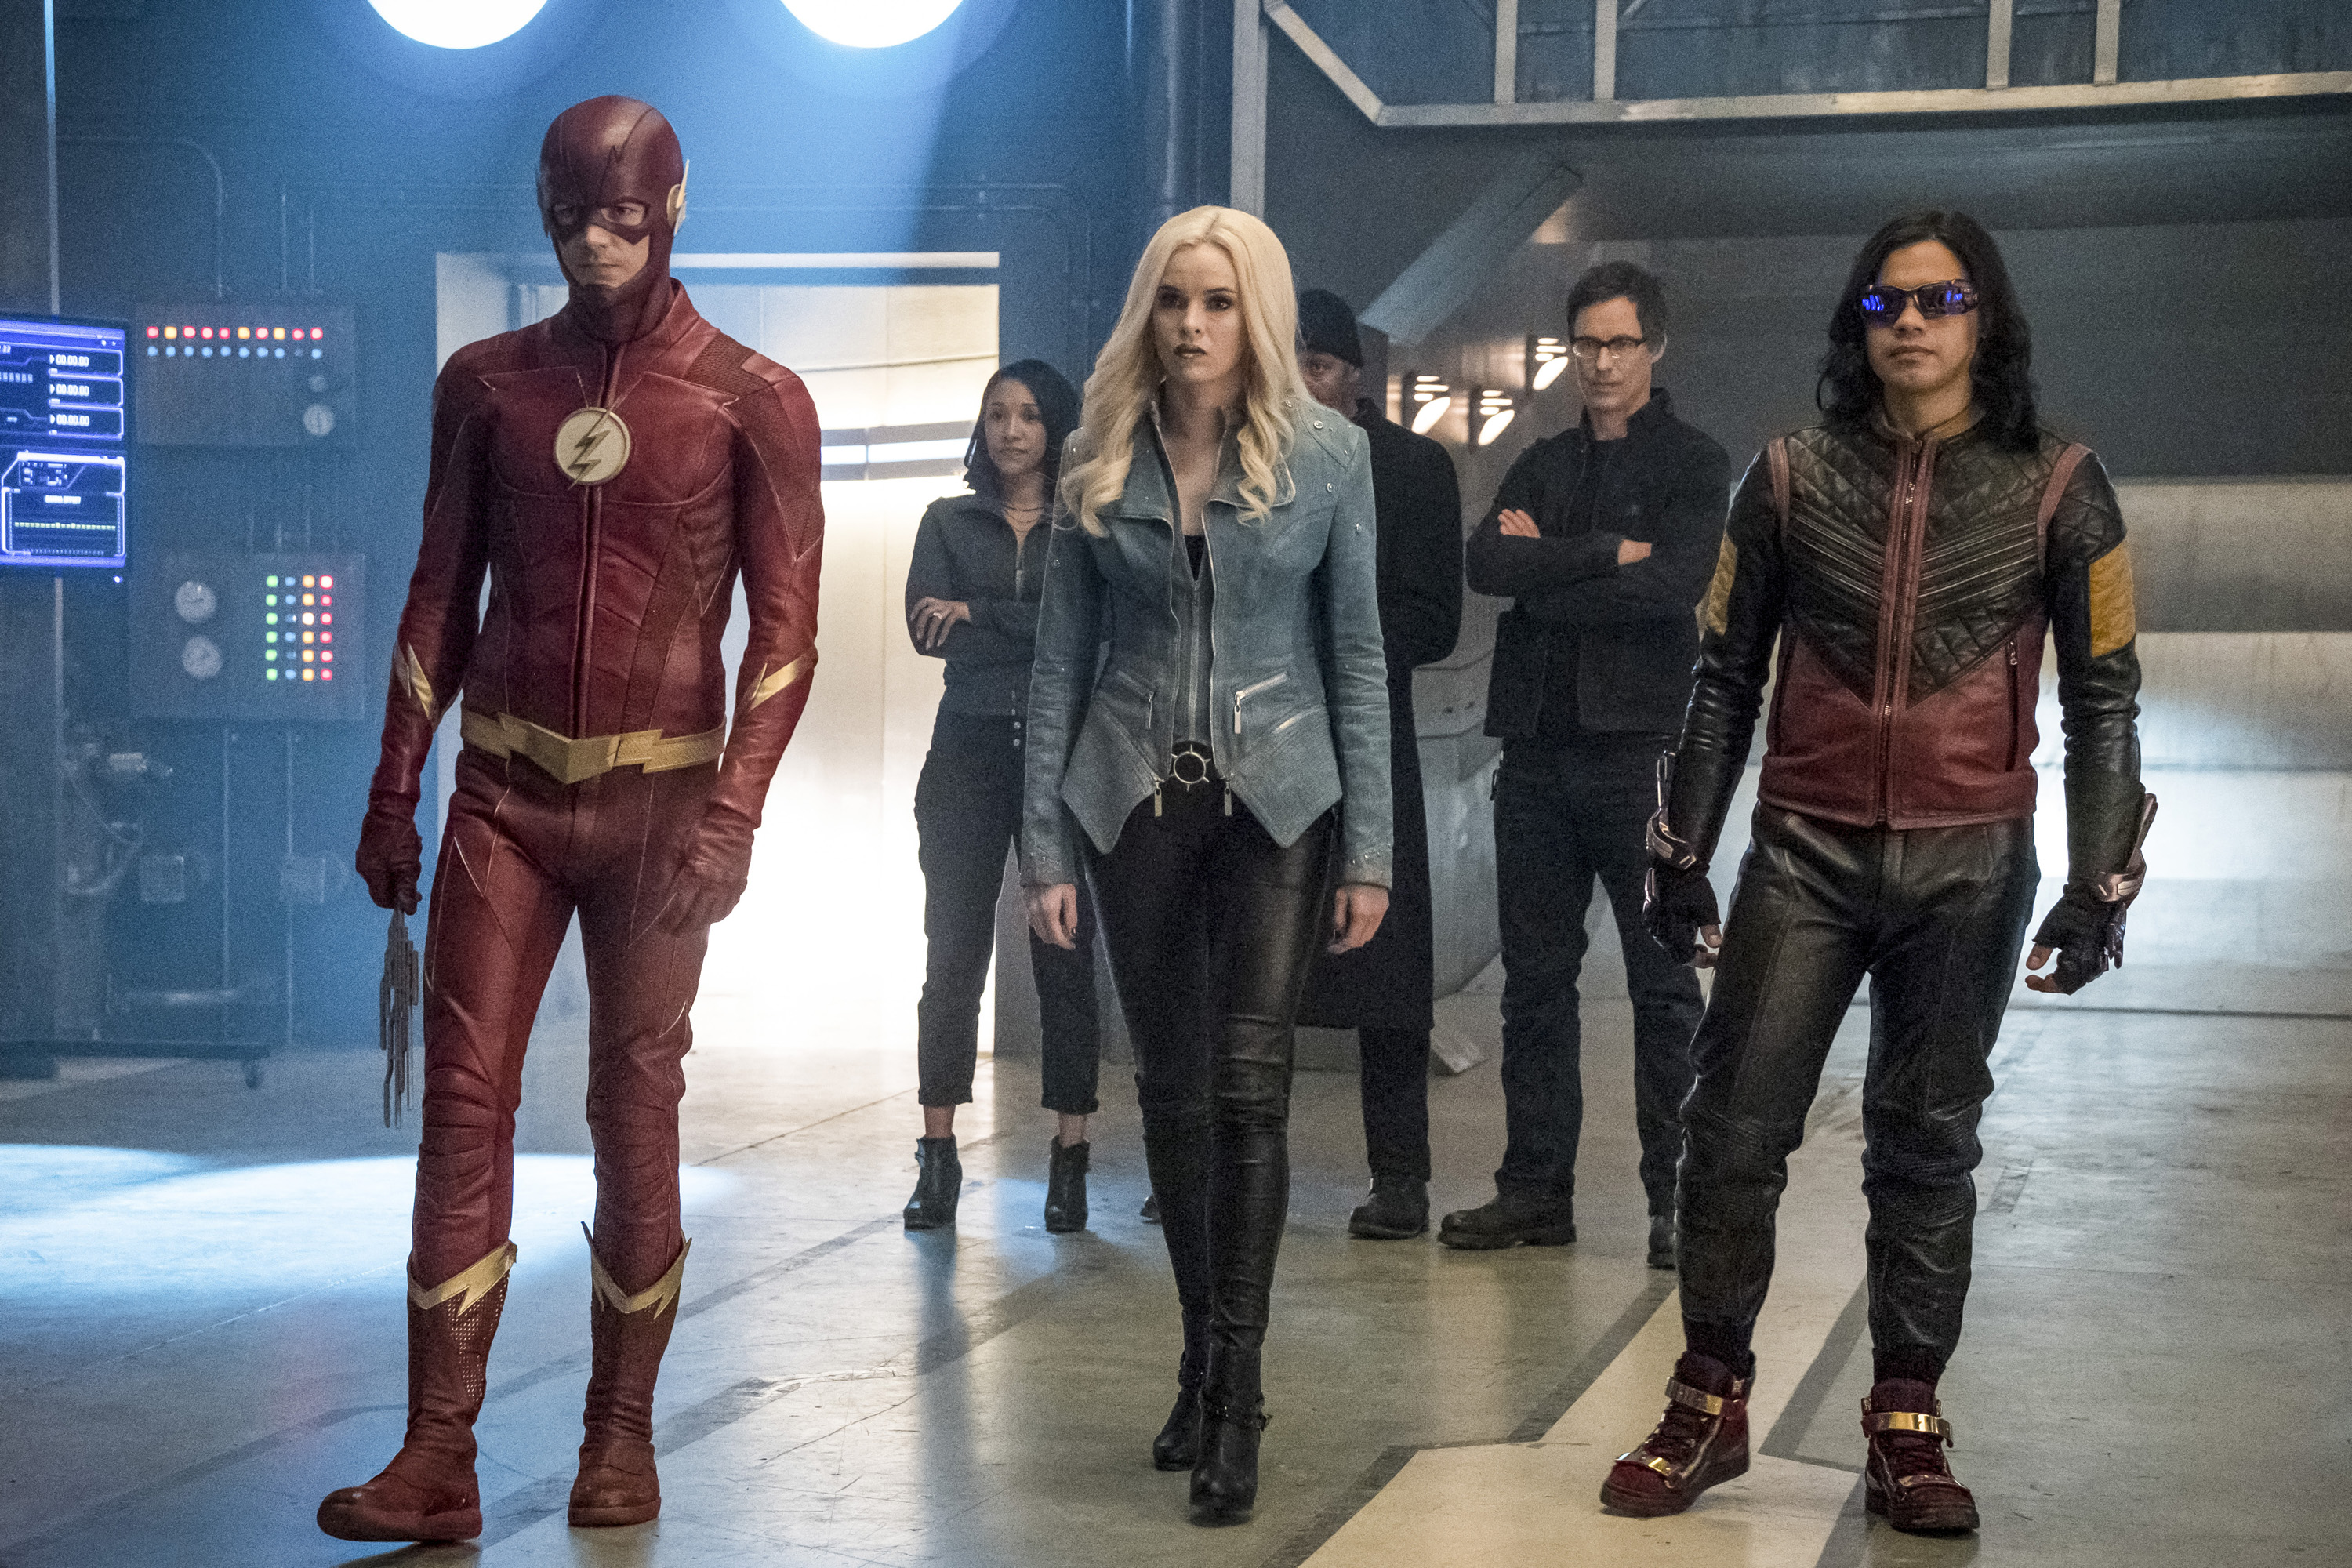 3840x2160 the flash season 4 preparing for attack 4k hd 4k wallpapers images backgrounds - Cisco wallpaper 4k ...